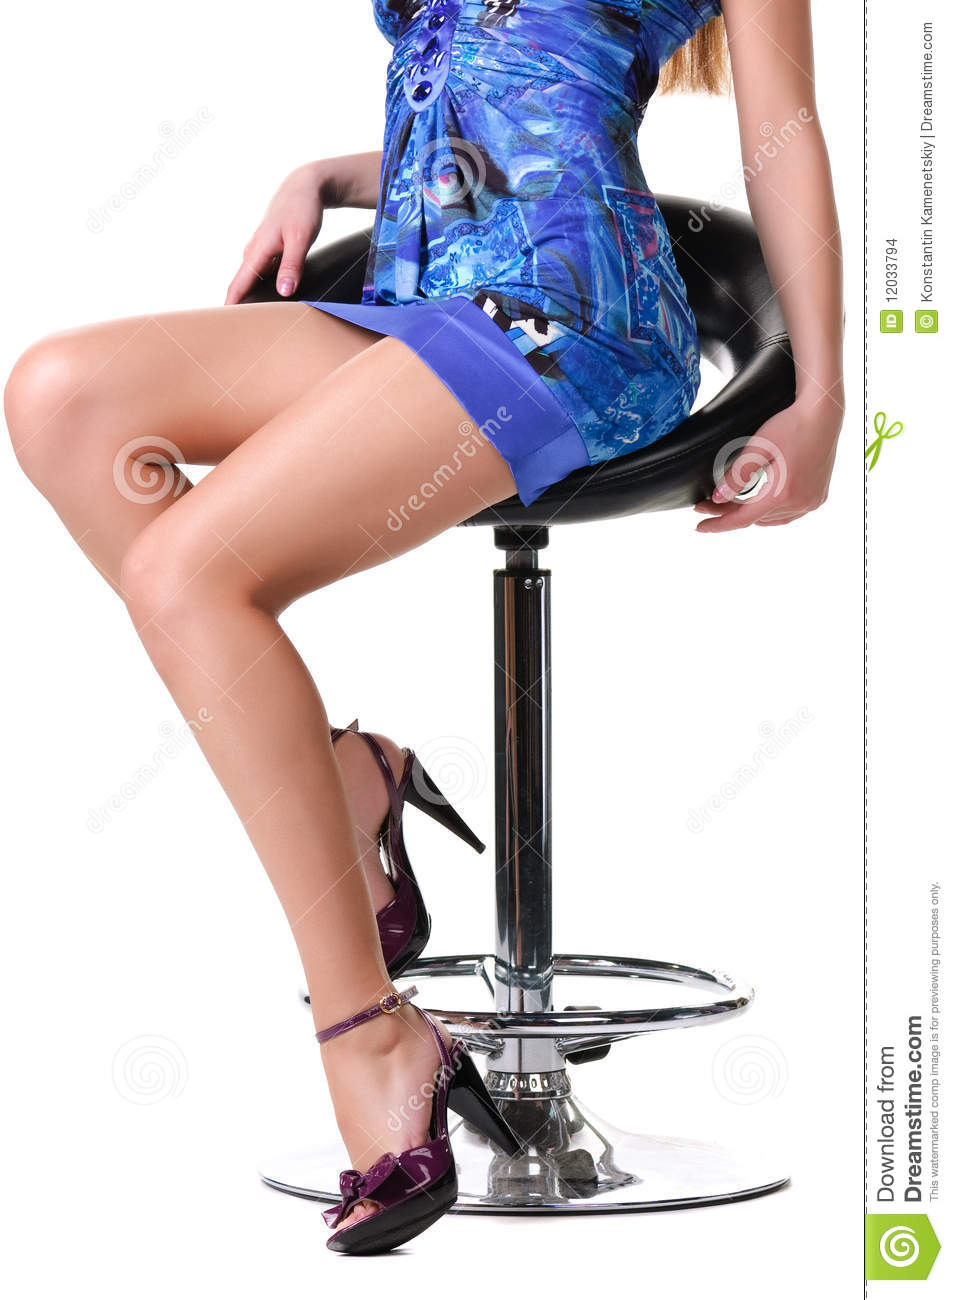 sexy females sitting on chairs